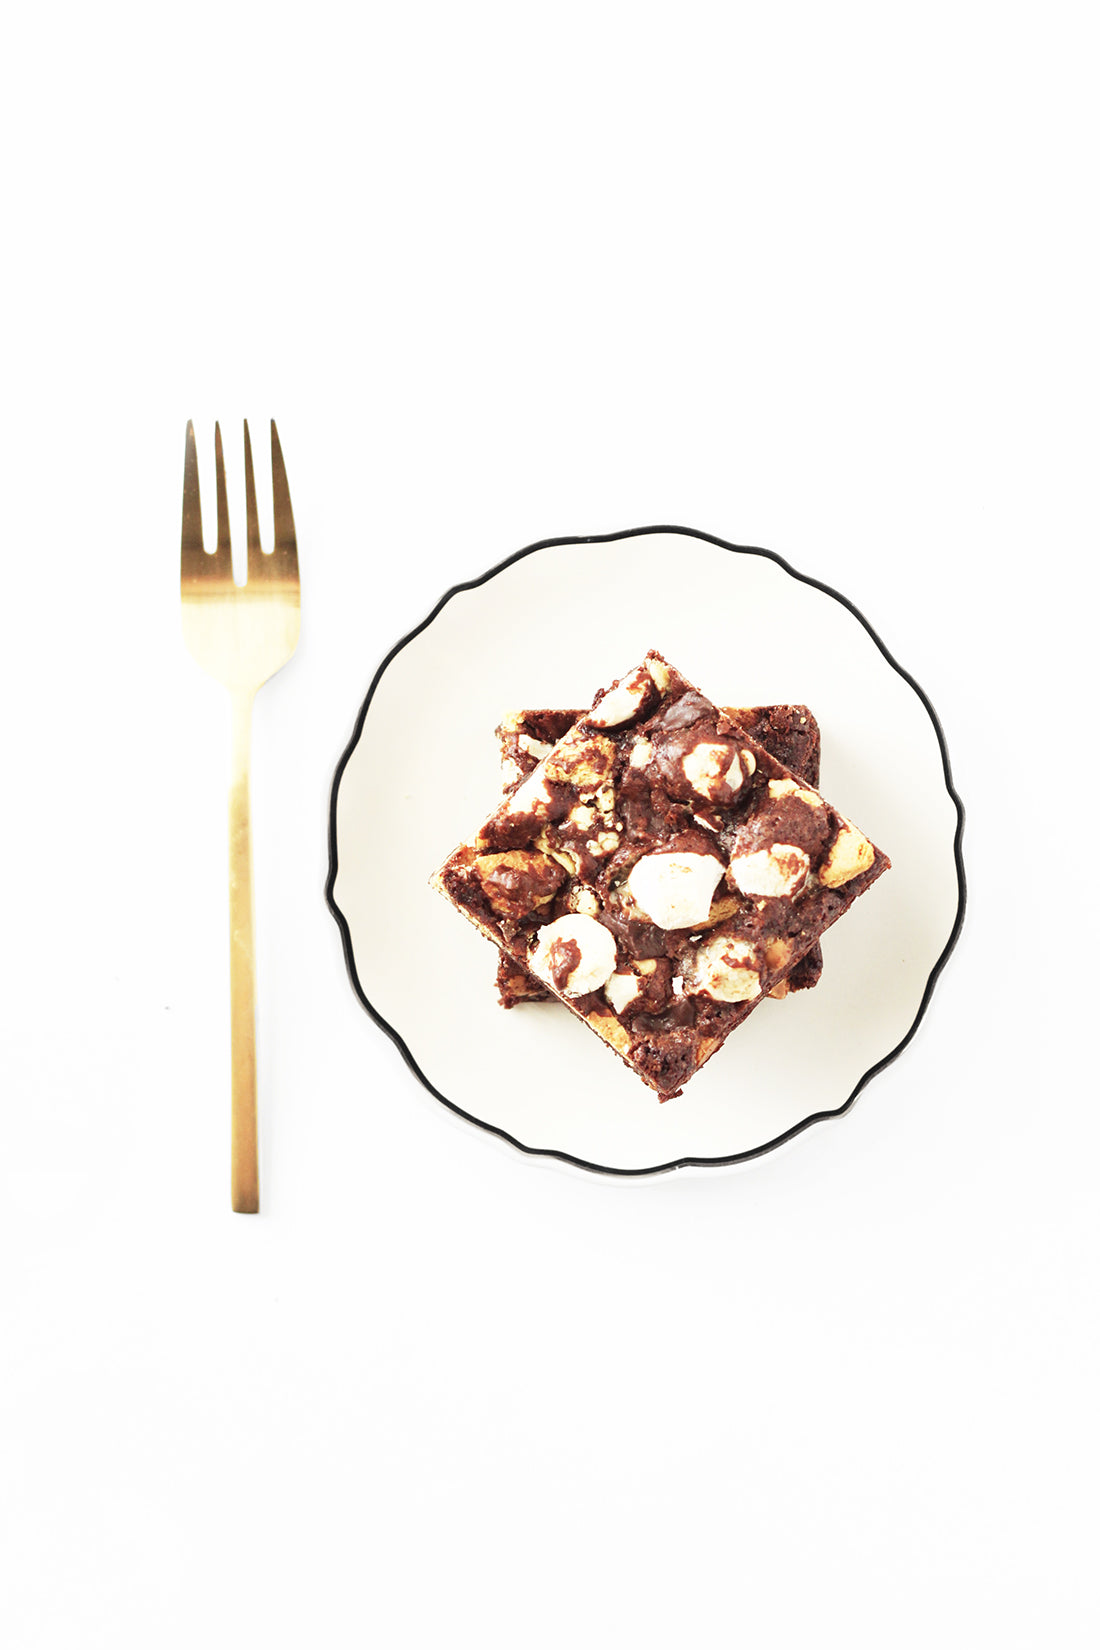 Image of two Miss Jones Baking Co Campfire Smores Brownies stacked on a plate next to a golden fork